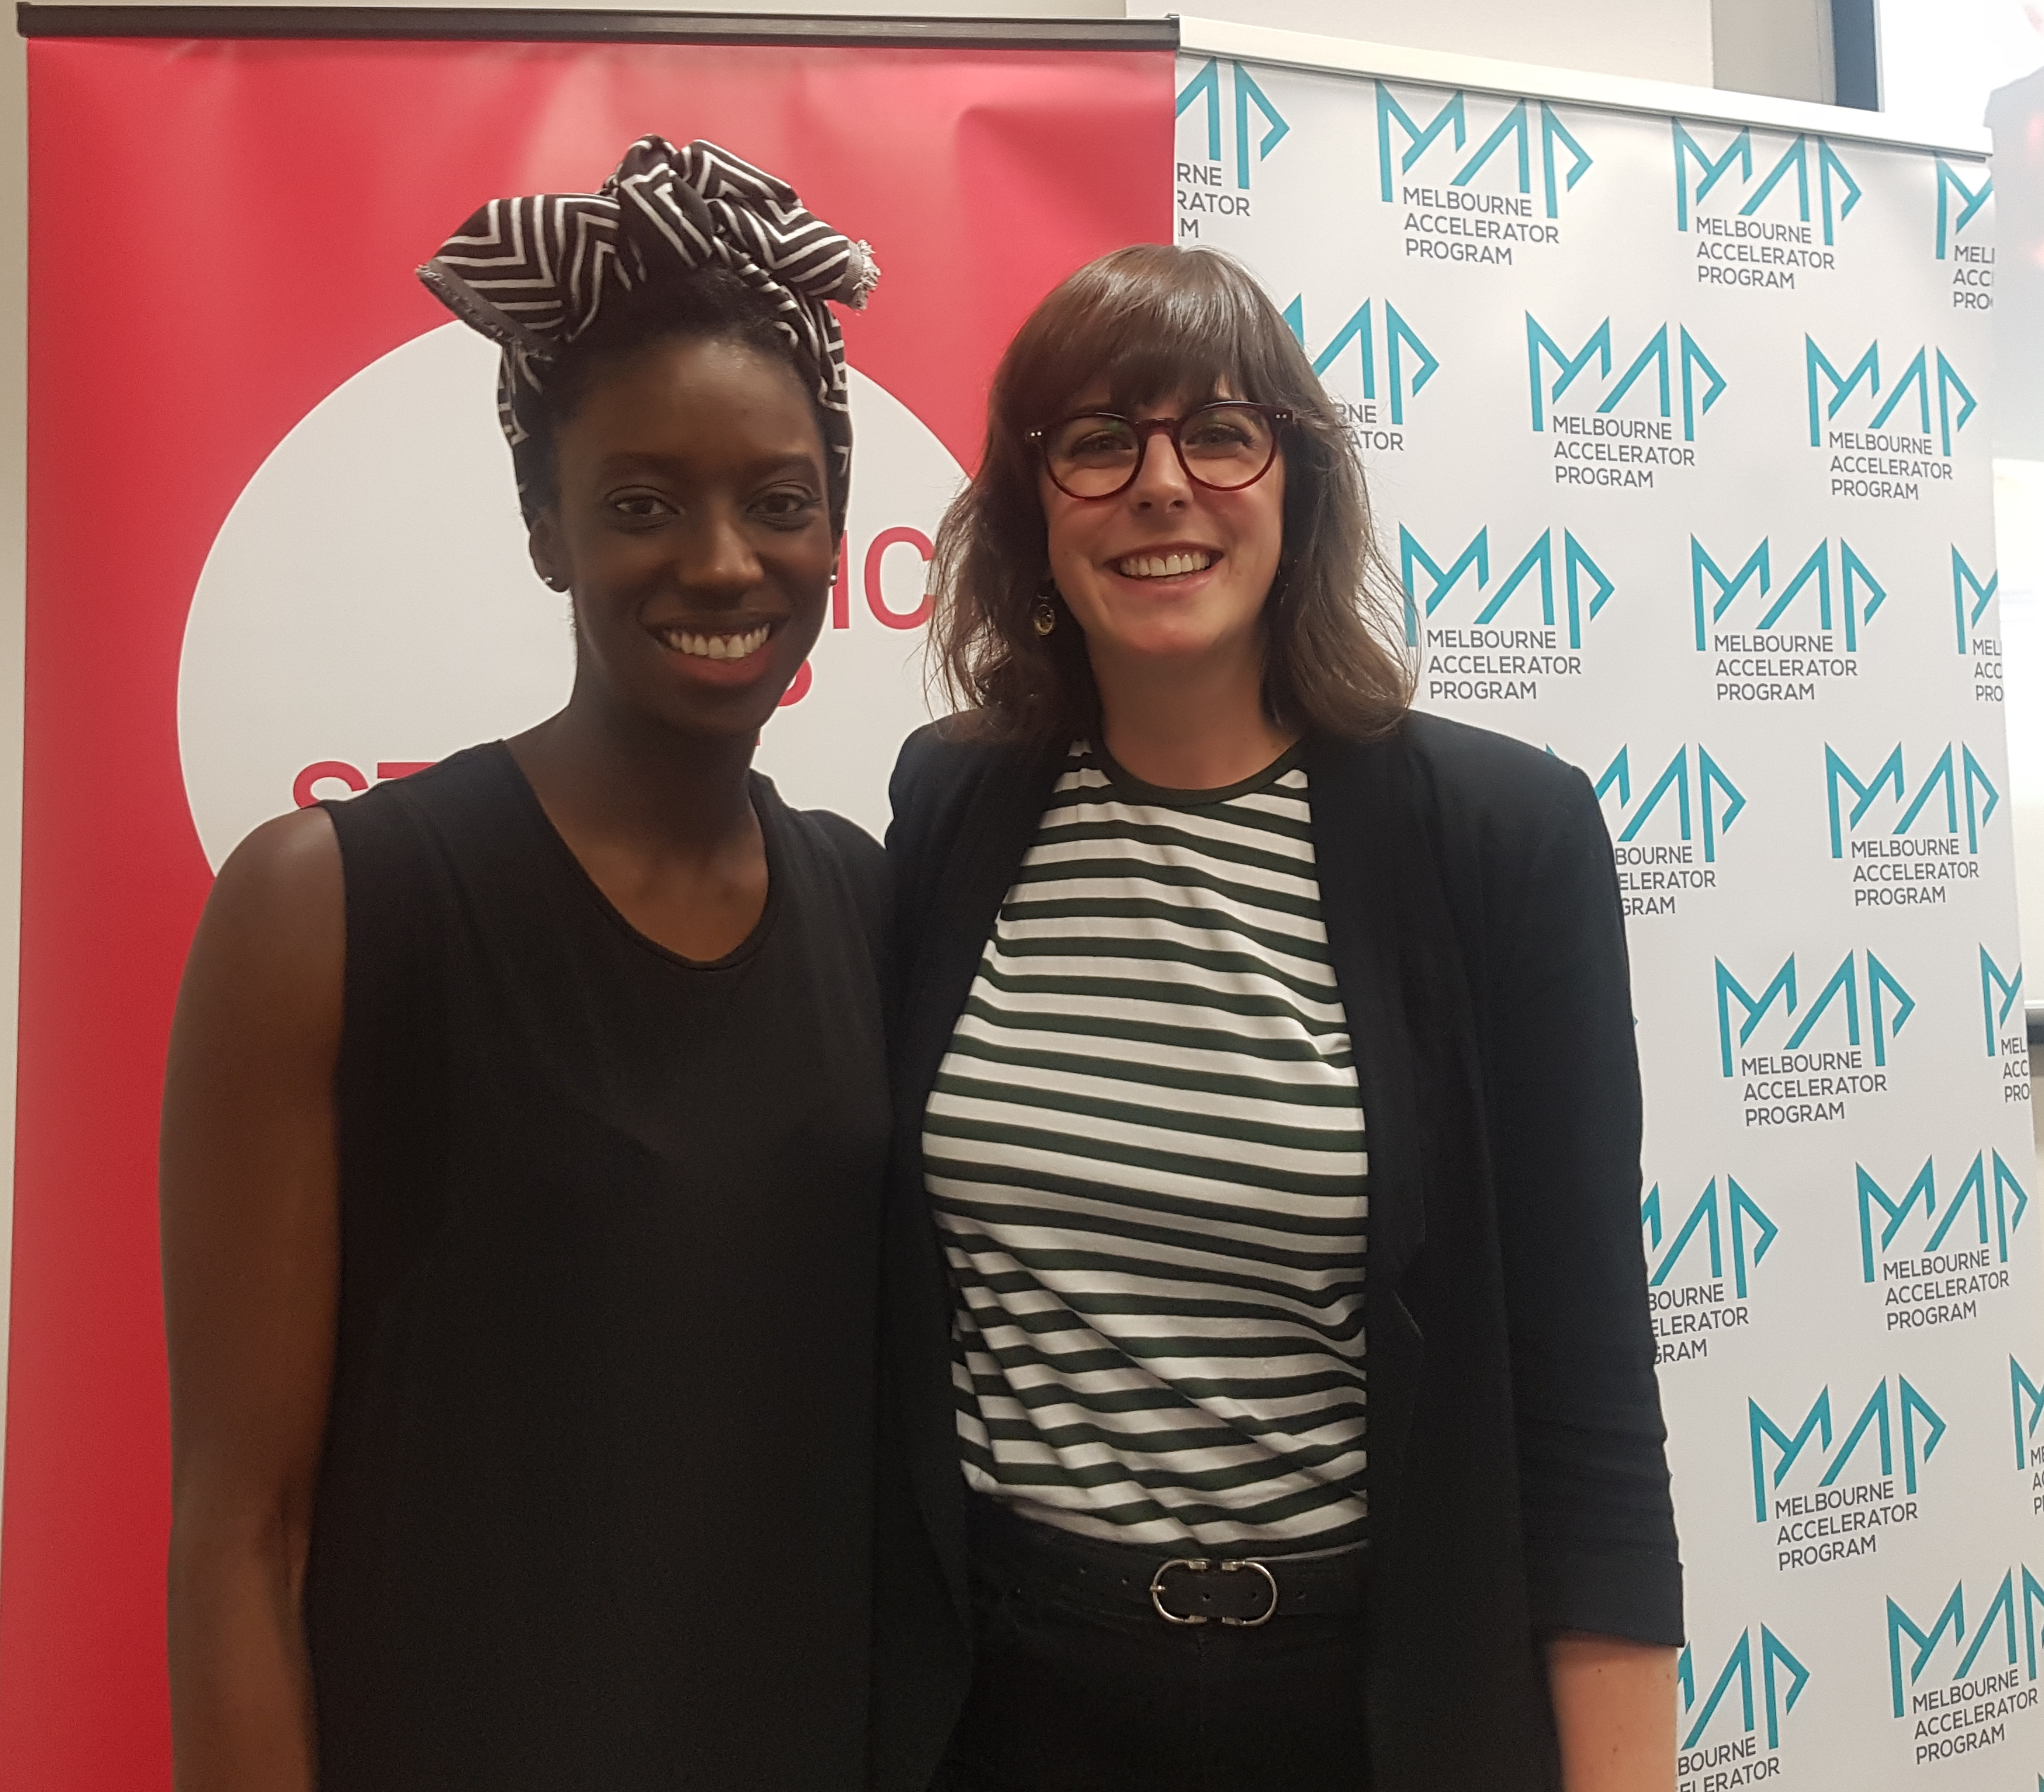 Abena Ofori, Social Impact Manager at the Melbourne Accelerator Program (MAP) and Judy Anderson, CEO of Startup Victoria